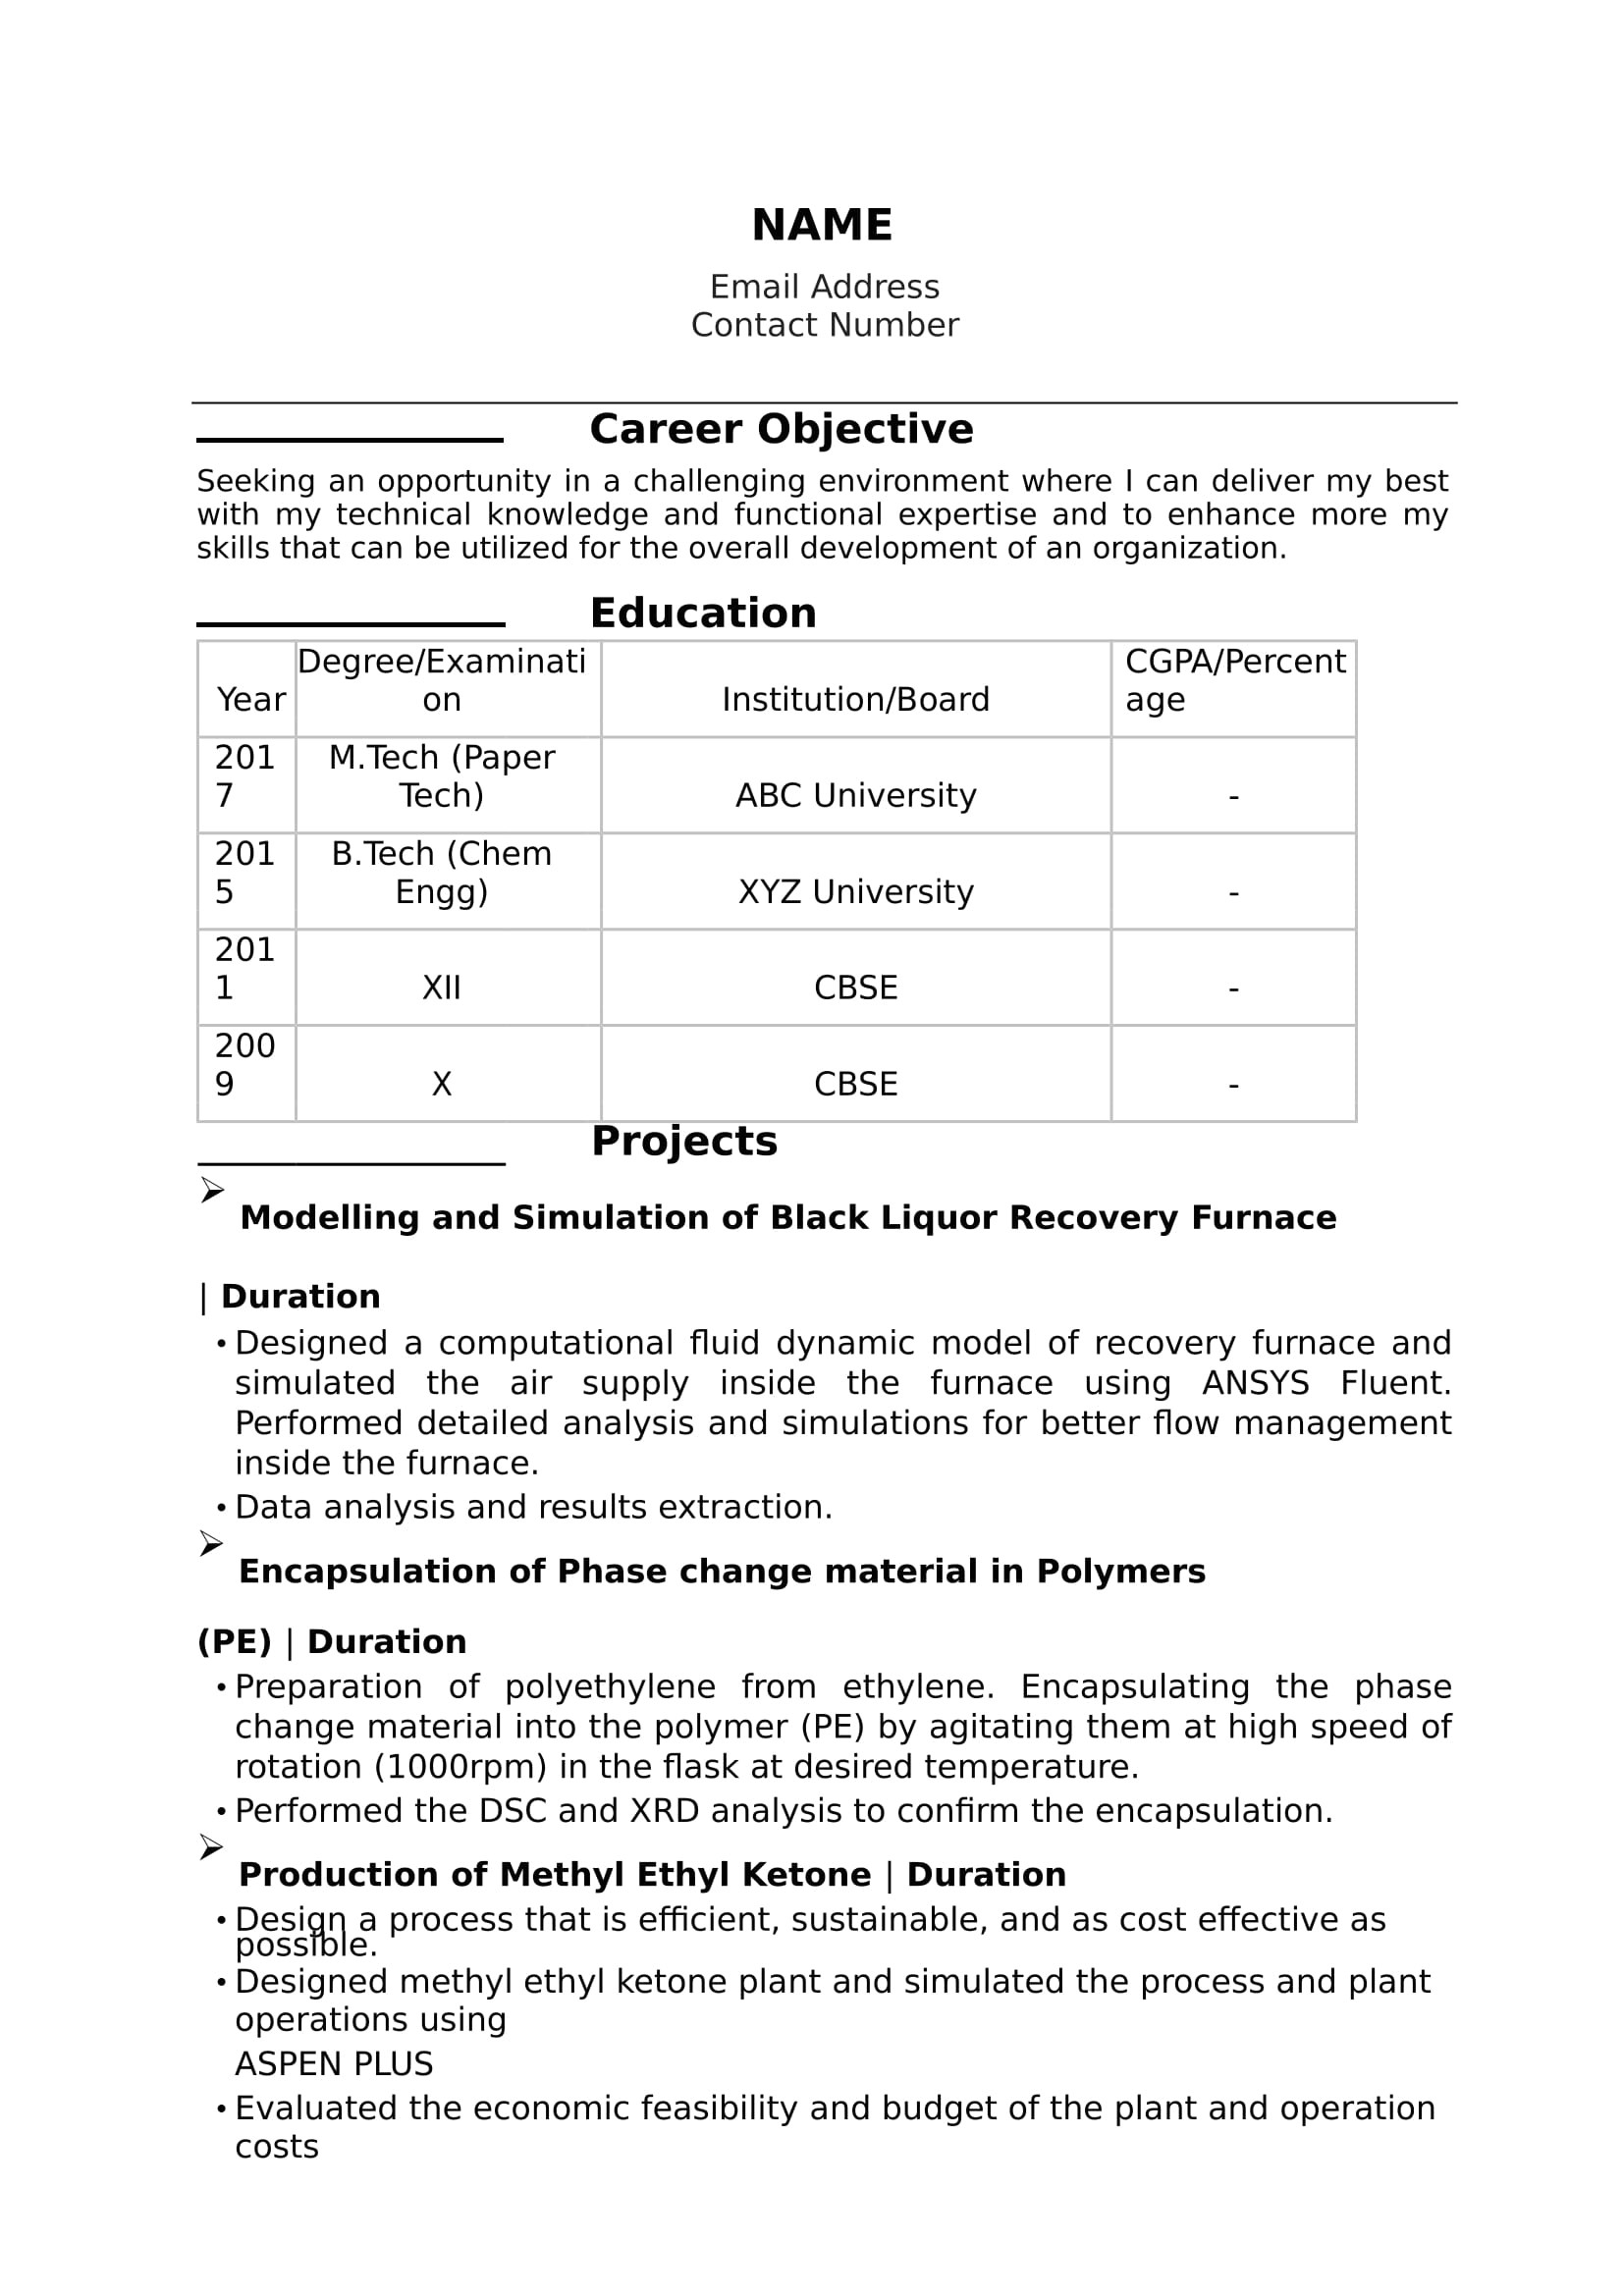 Resume format for Bsc Chemistry Freshers Bsc Chemistry Fresher Resume Sample Resume Samples Free